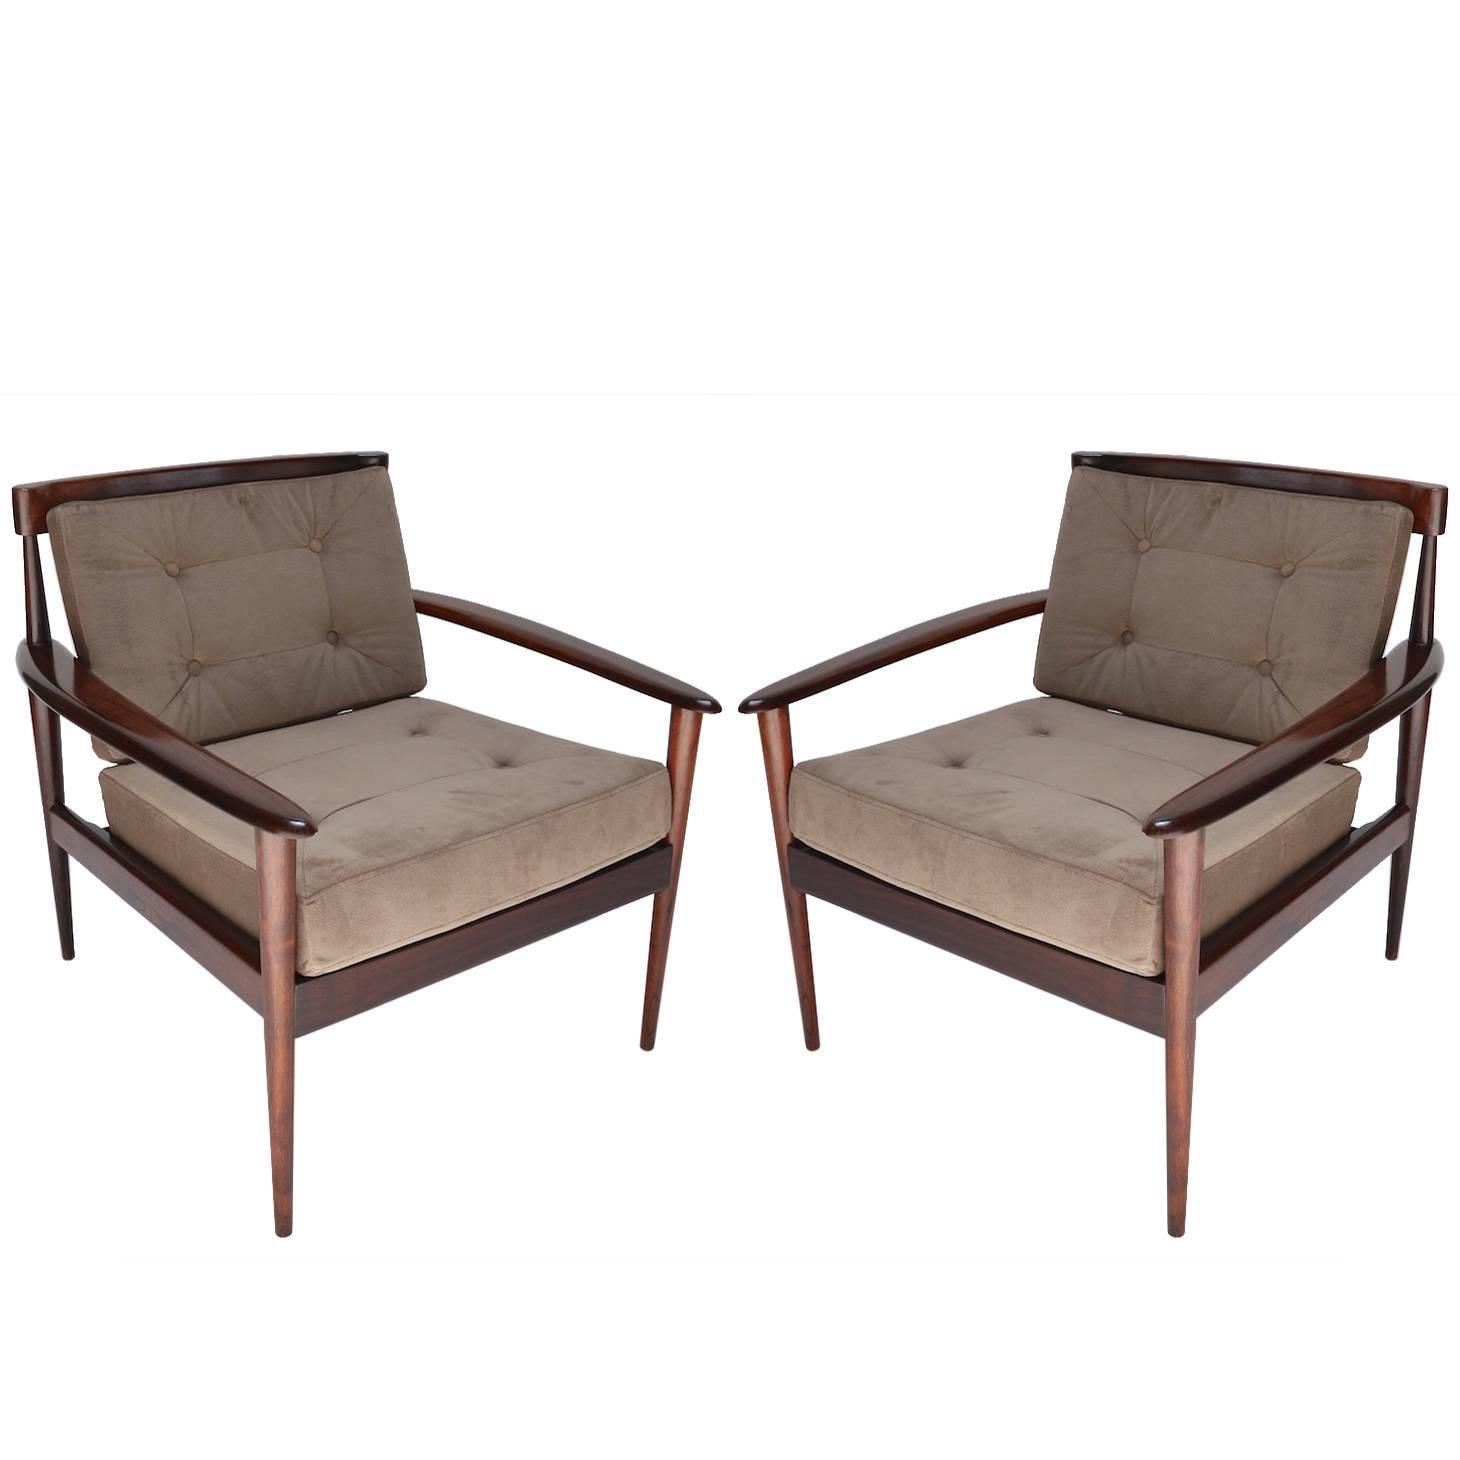 Pair Of Rino Levi Brazilian Jacaranda Armchairs | See More Antique And  Modern Armchairs At Https